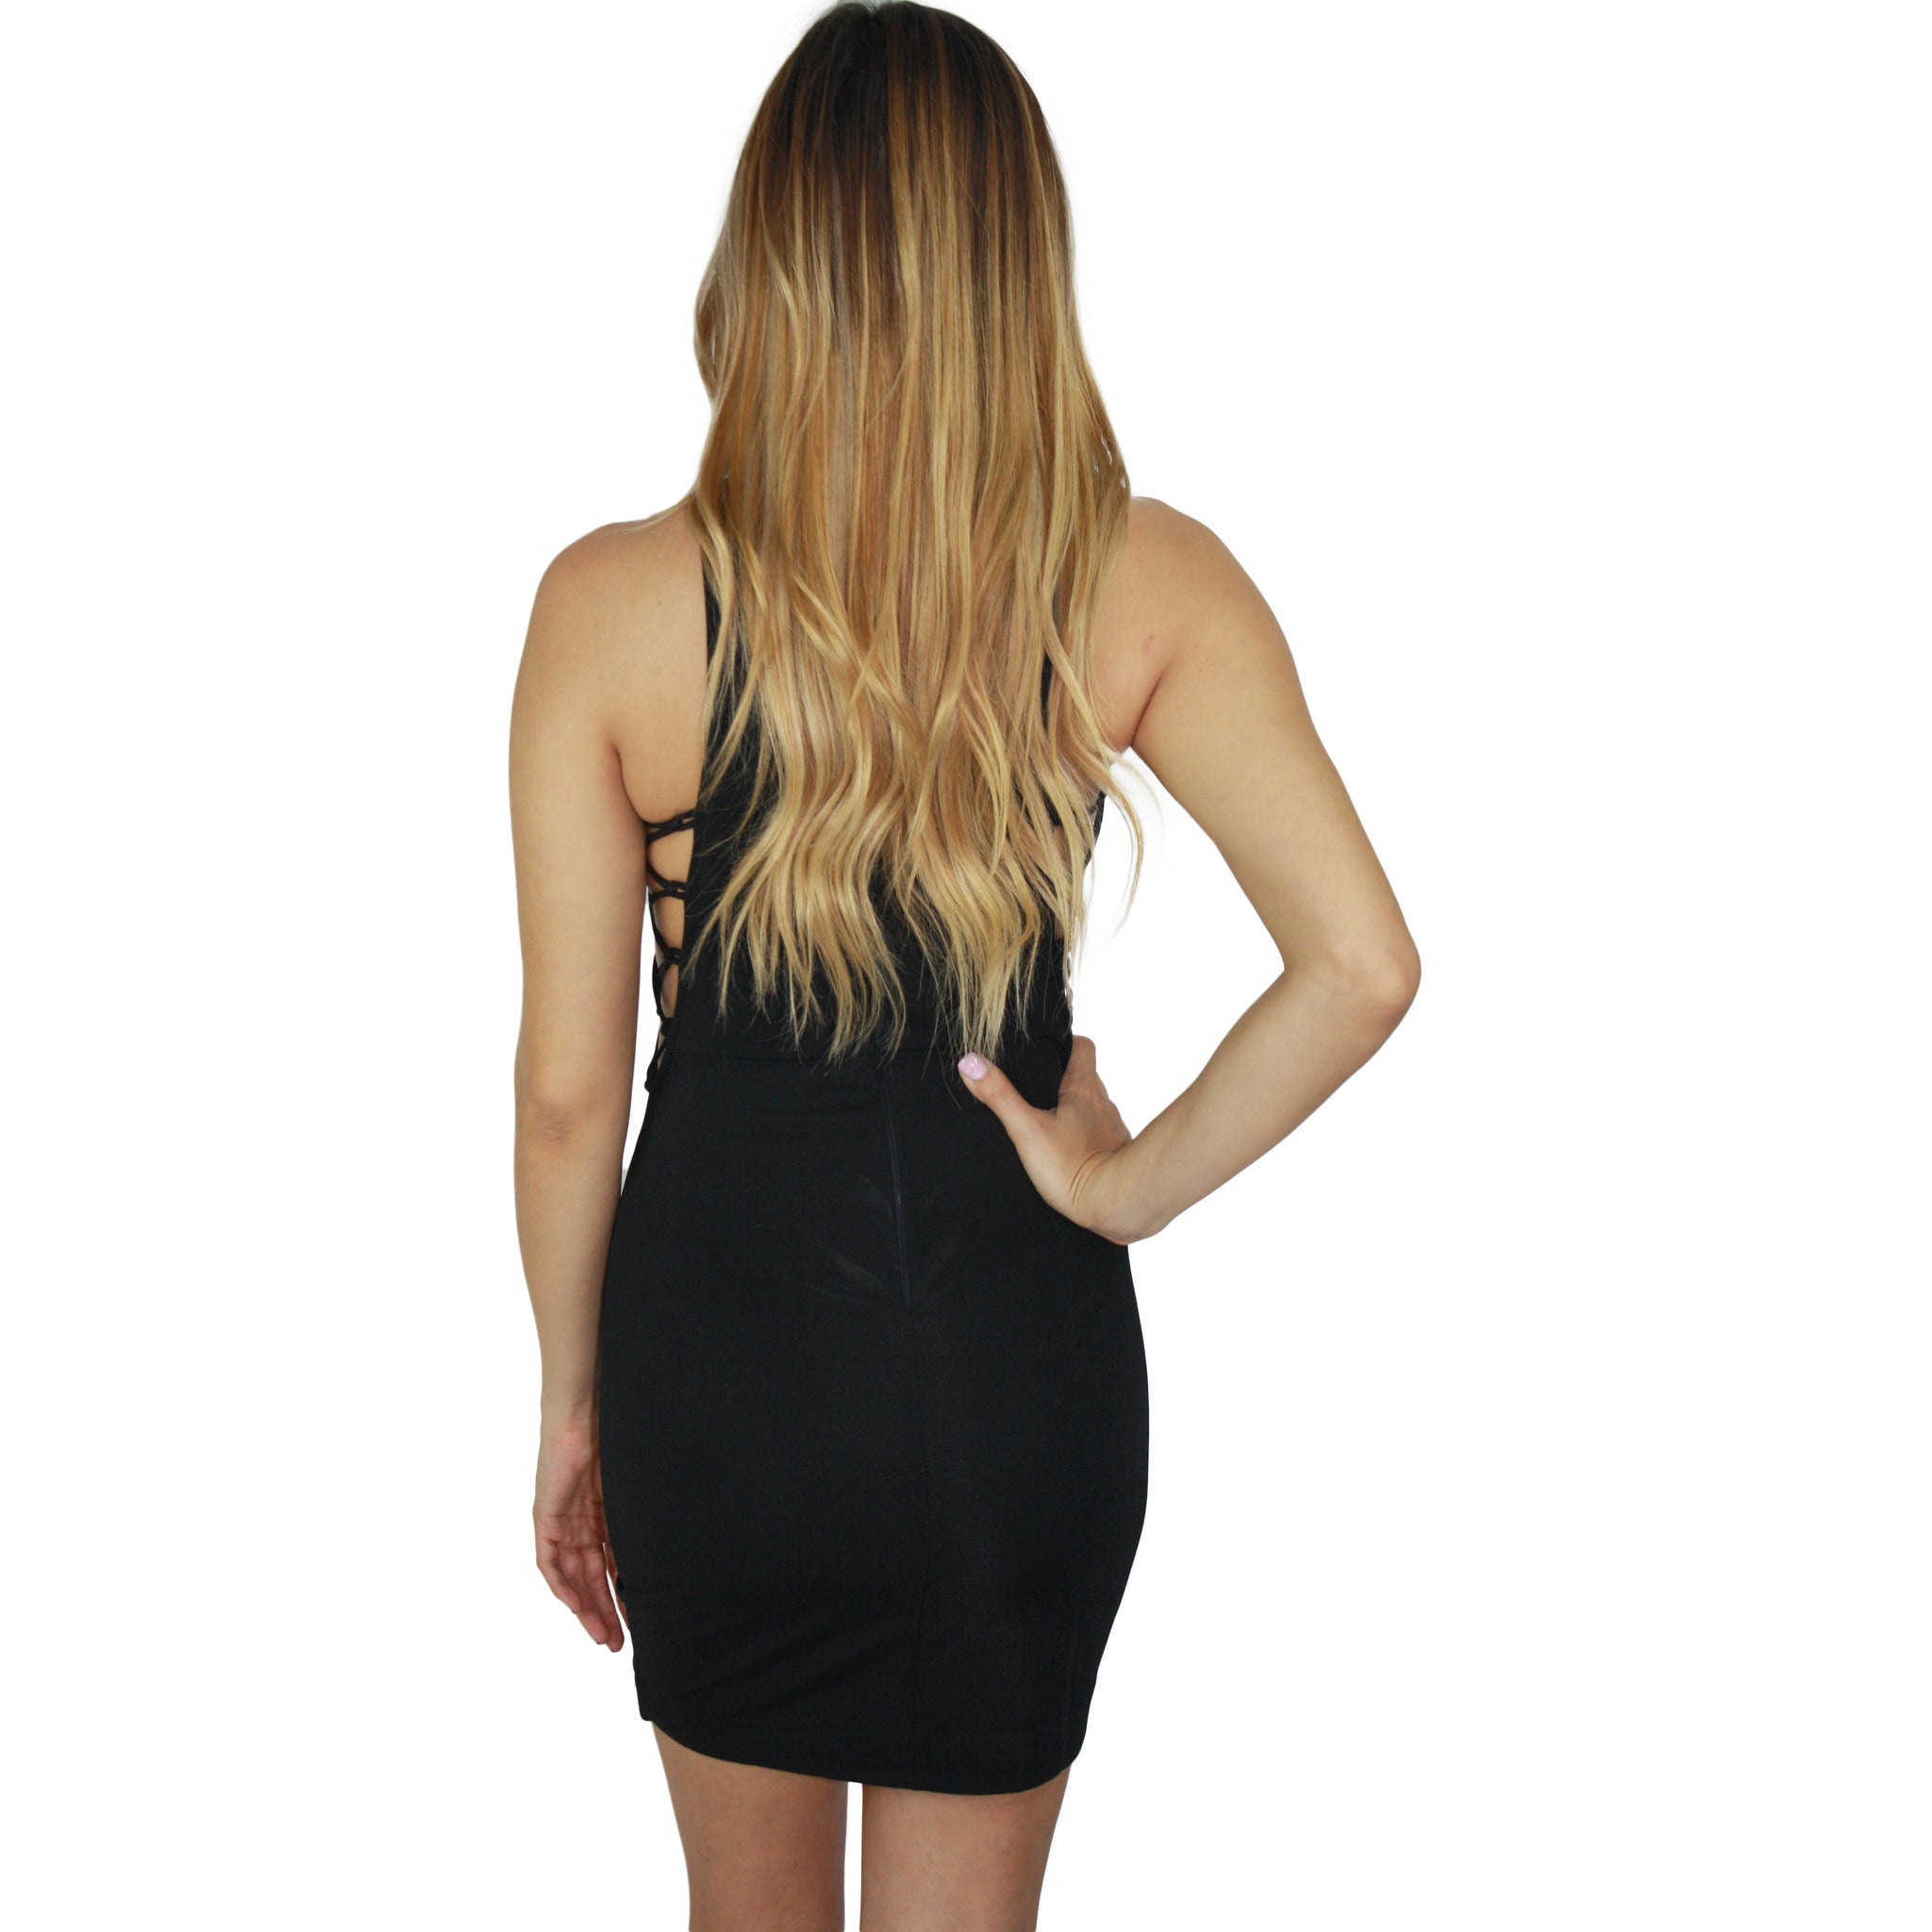 Tayler Cross Side Mini Dress in Black